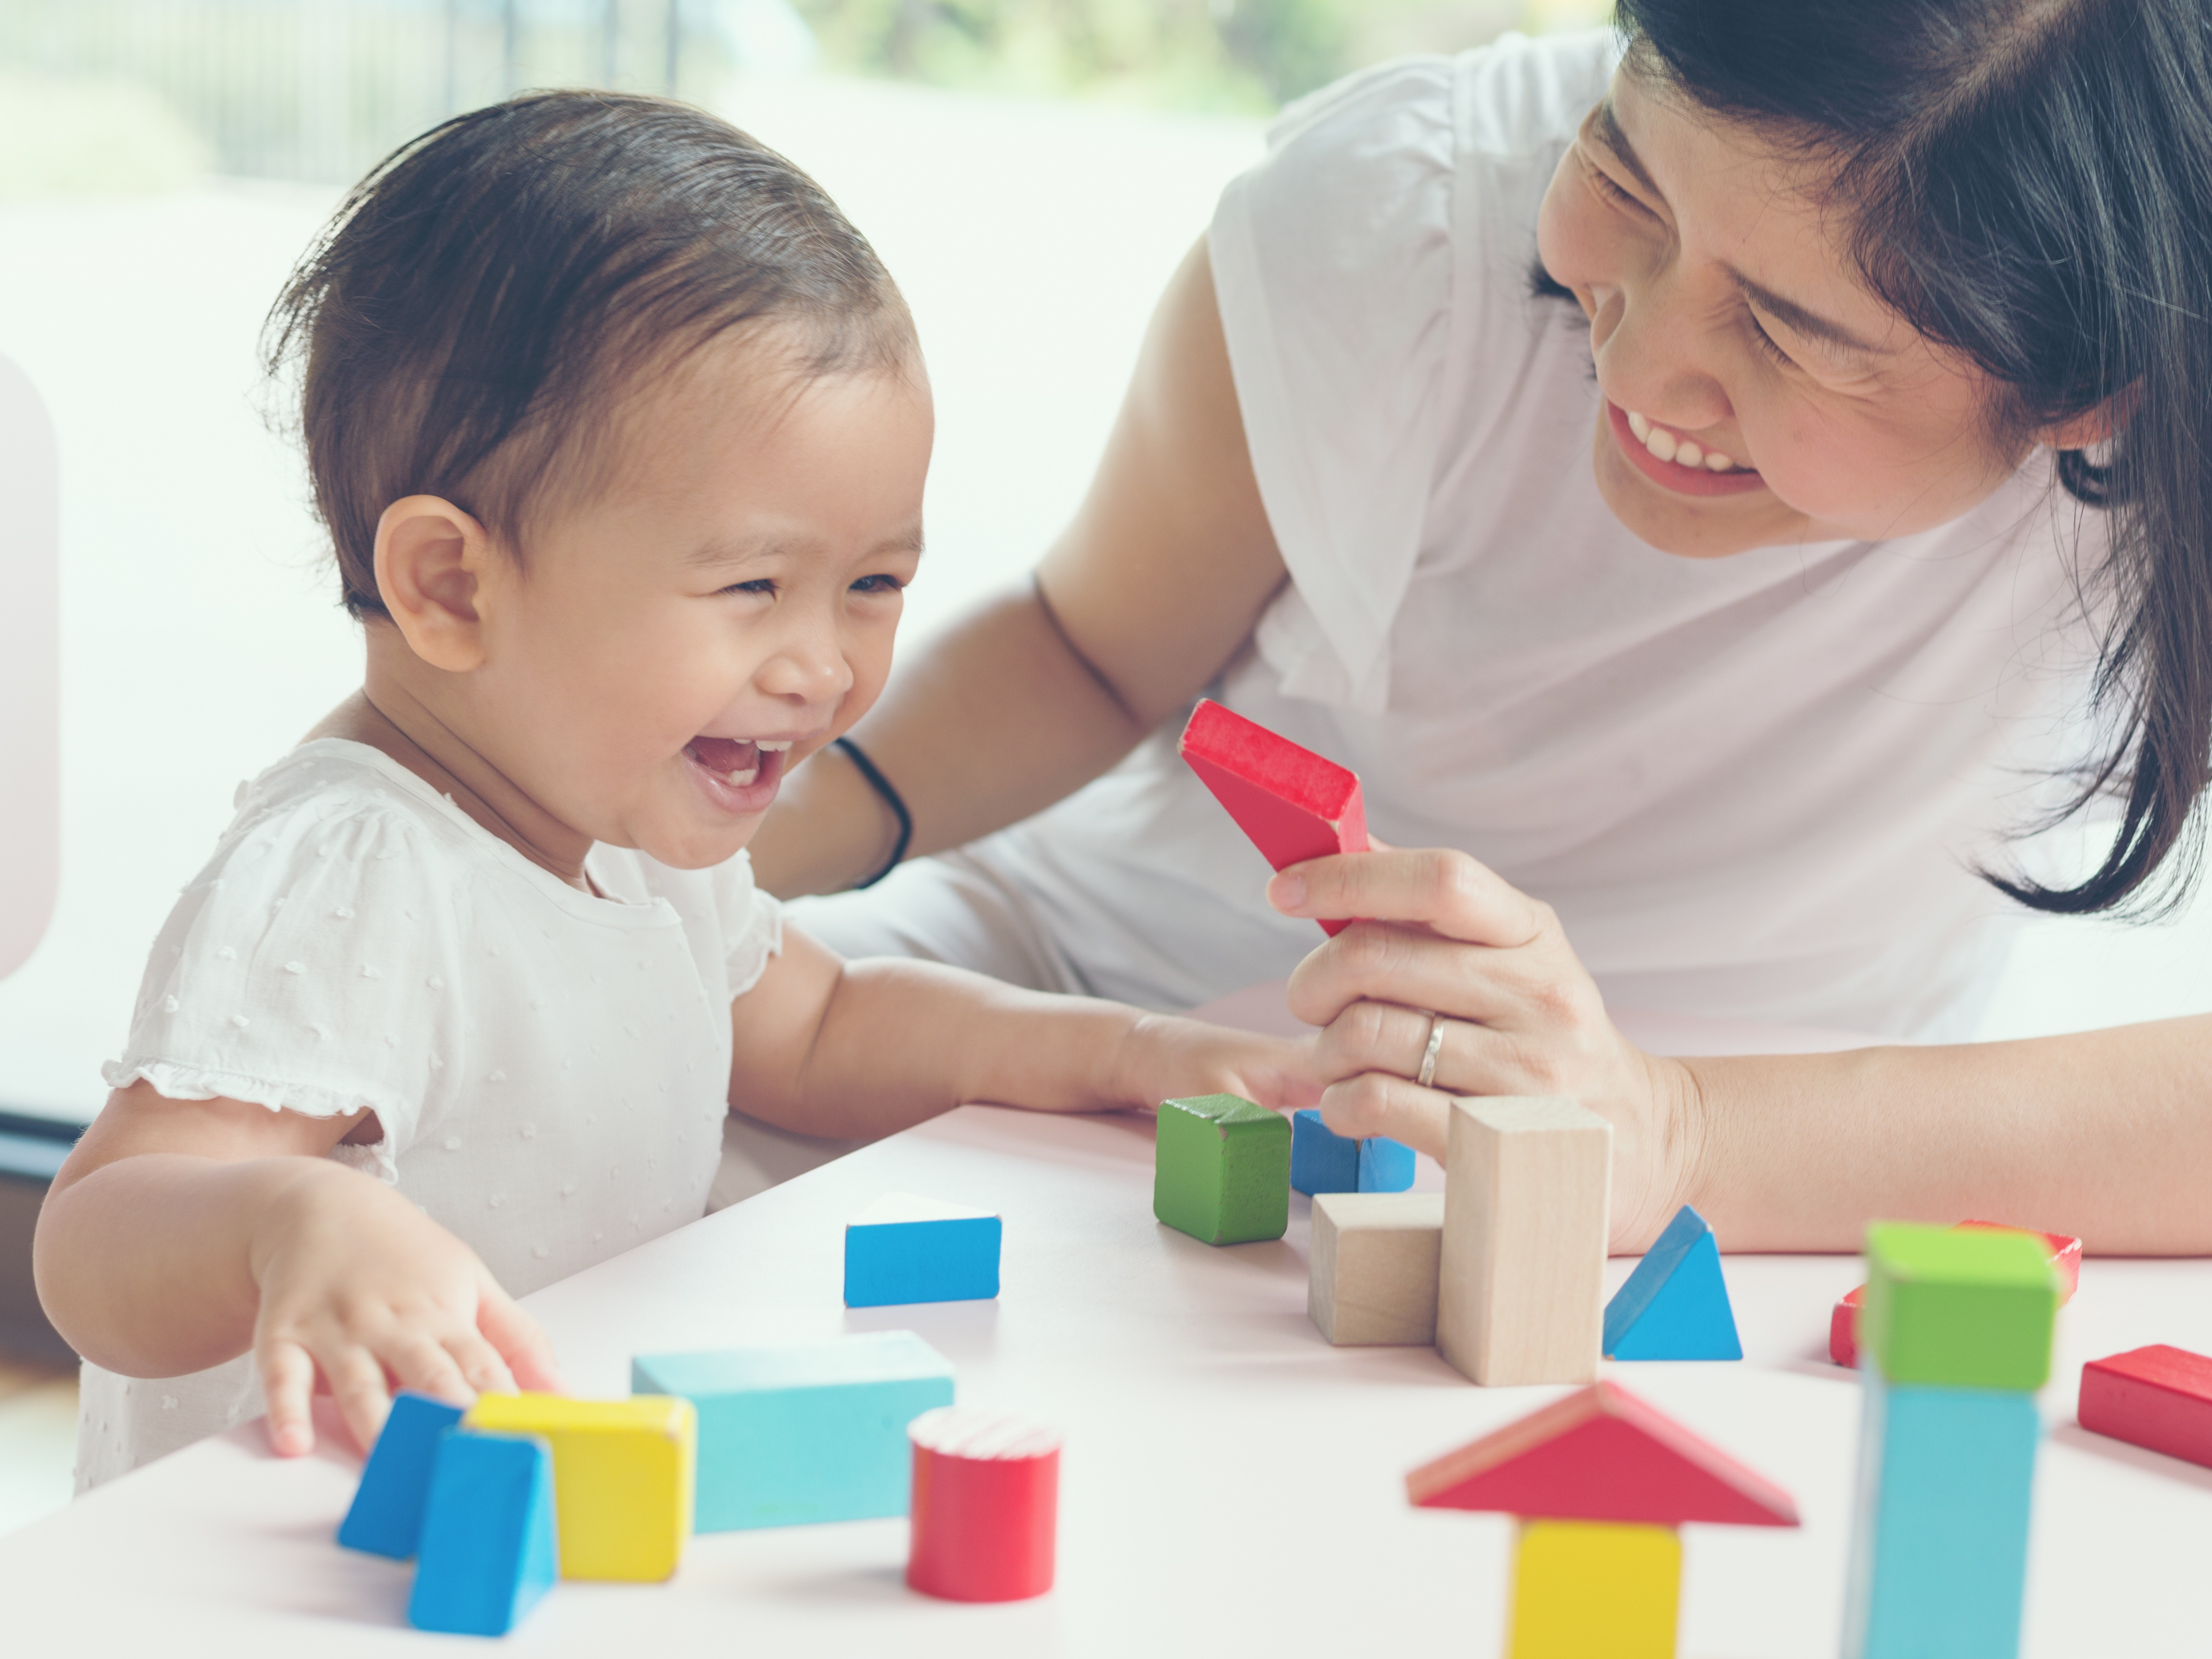 Asian mom and young daughter smiling playing with blocks